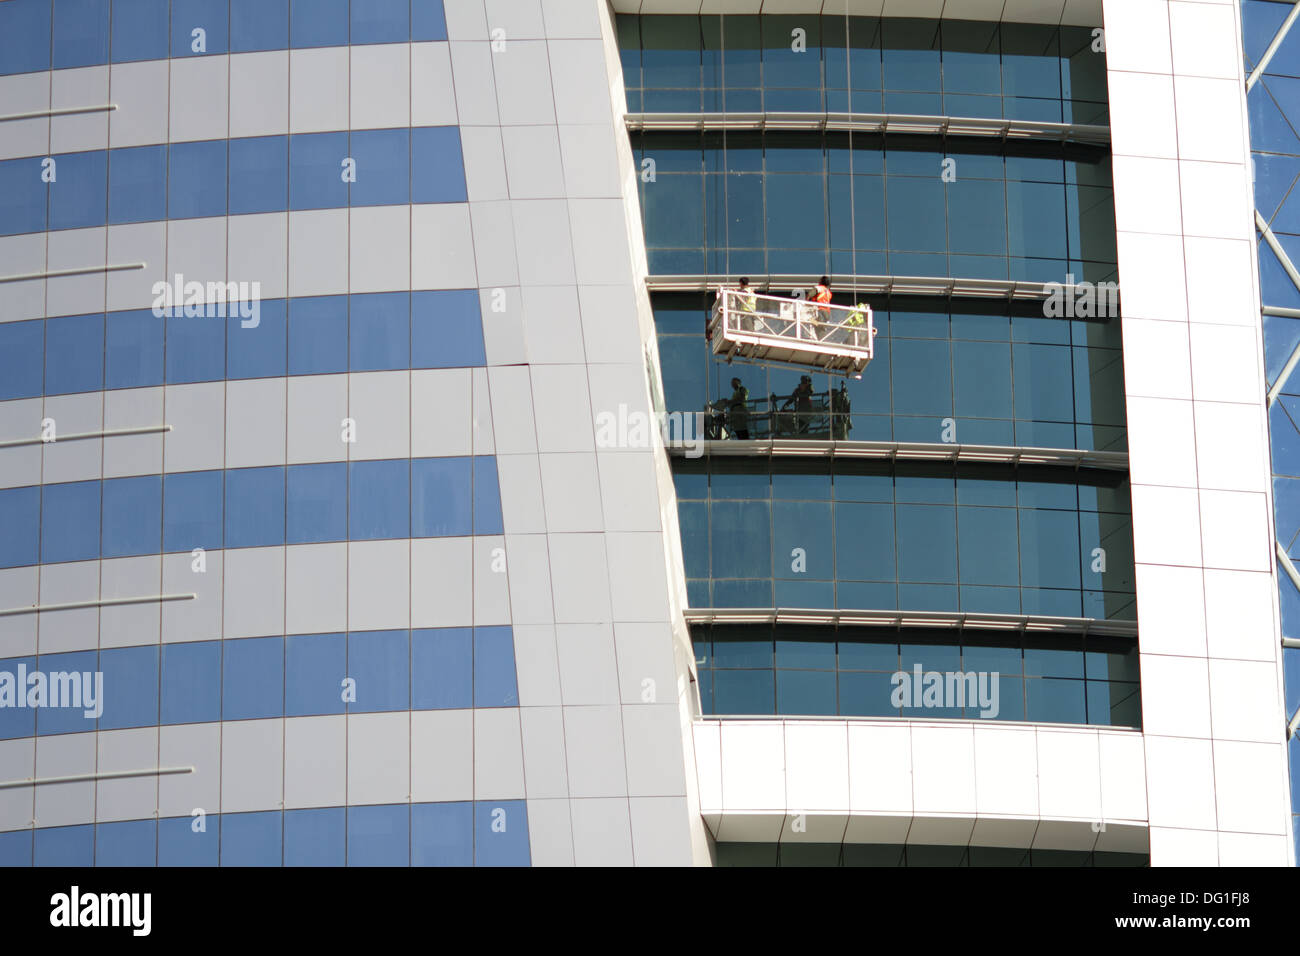 Window cleaners on the the World Trade Centre Building, Manama, Kingdom of Bahrain - Stock Image